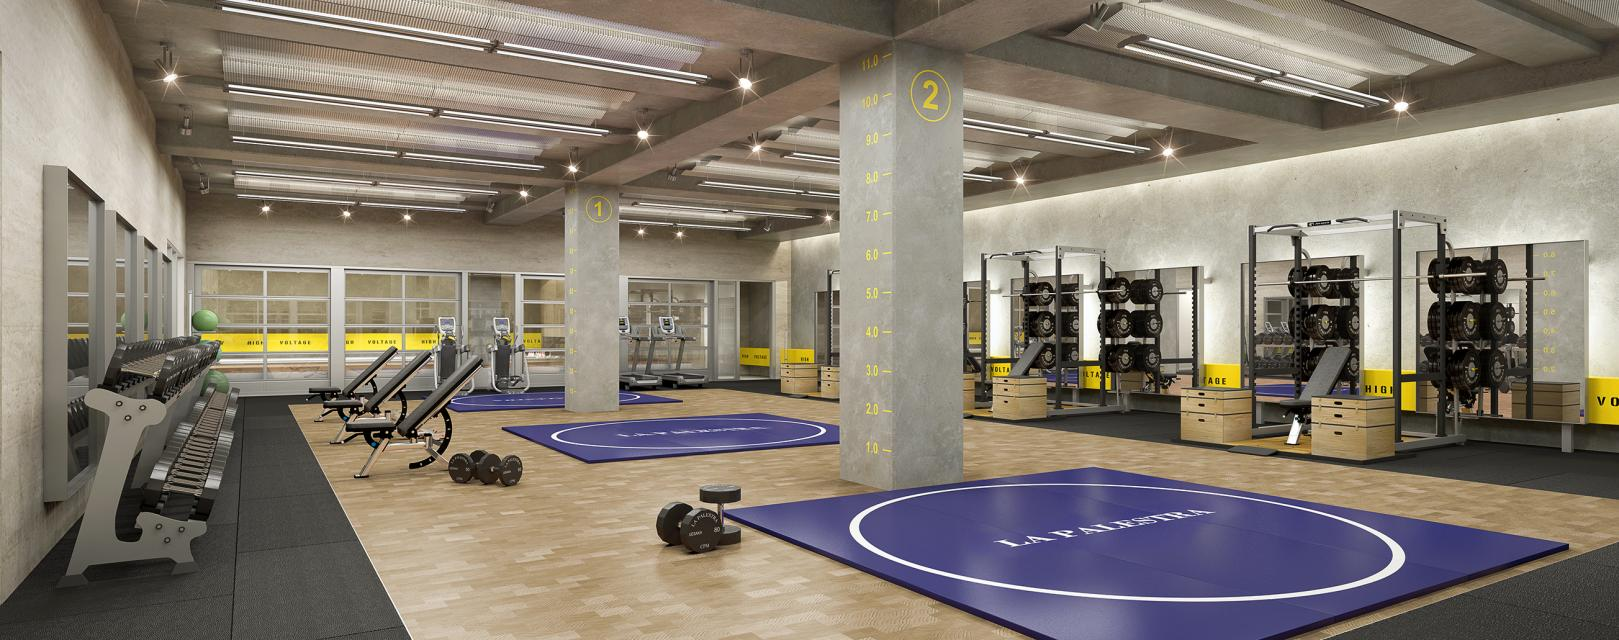 LA PALESTRA Fitness and Wellness Center inside the buliding at 70 Pine Street